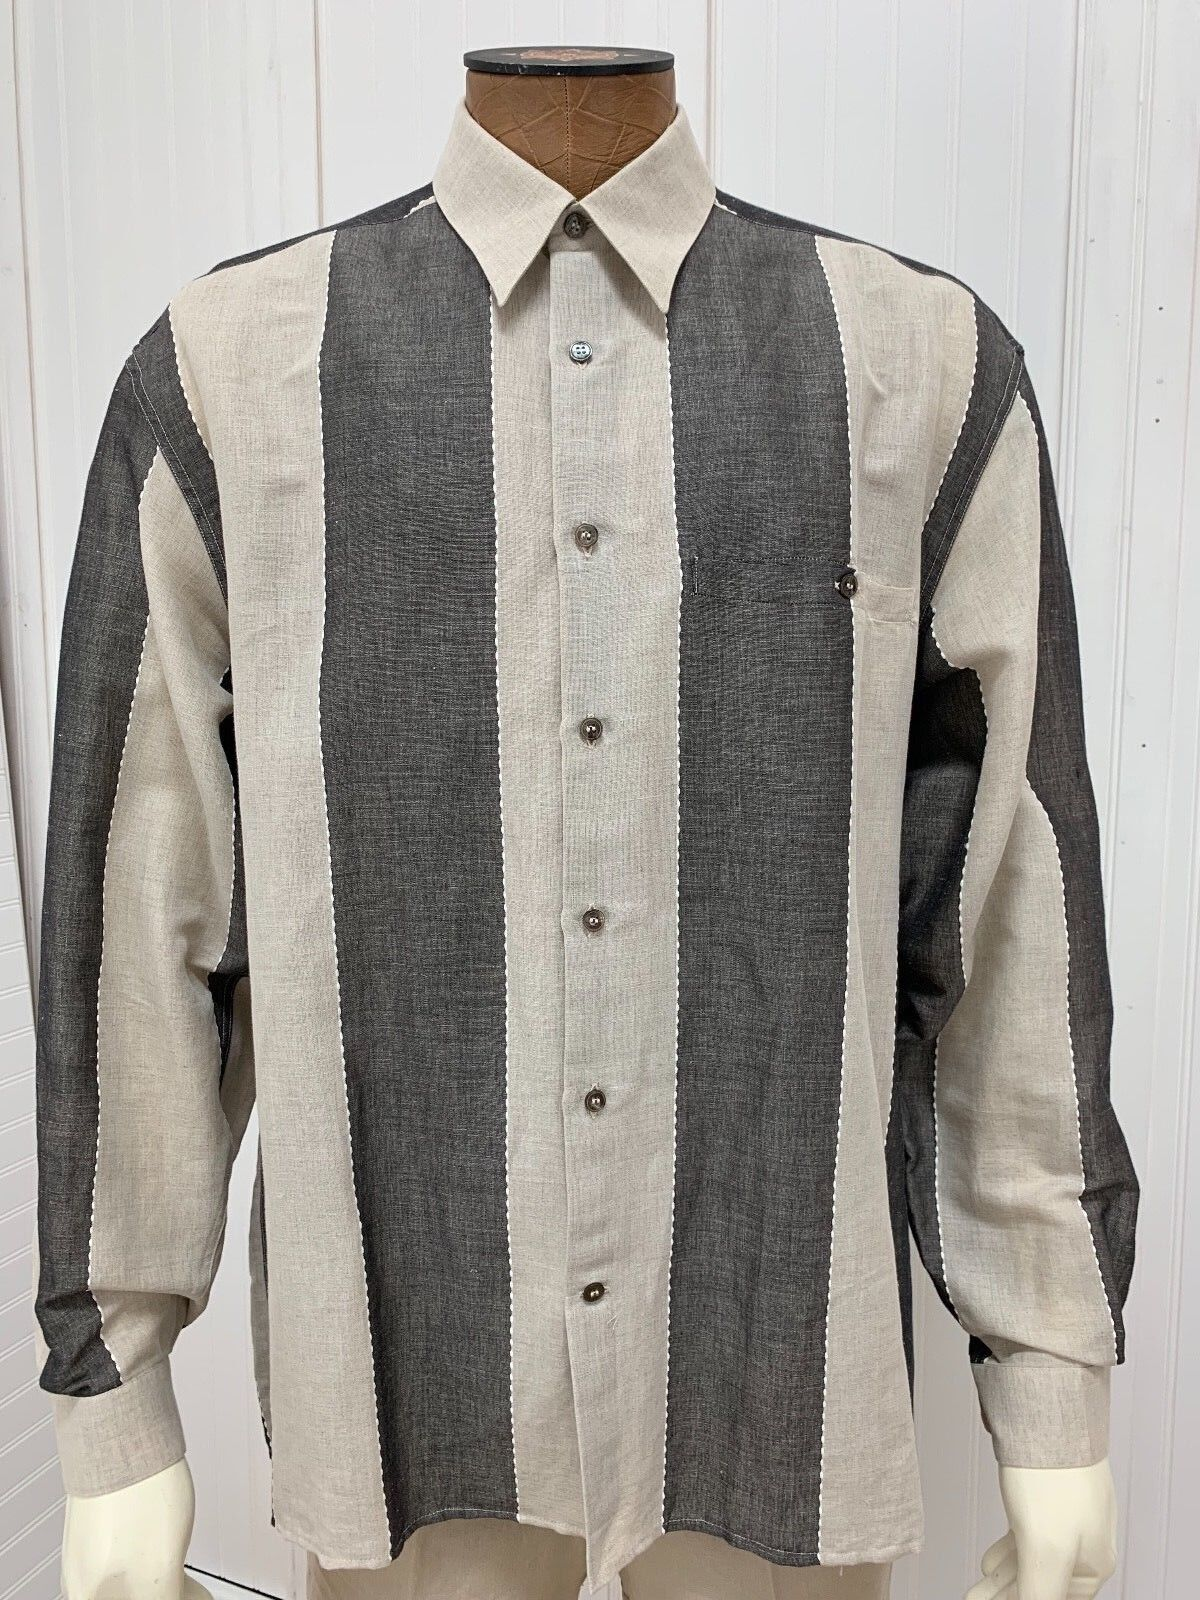 Lazo Large Linen Shirt Tan Off White Brown Striped Mens long sleeve button front